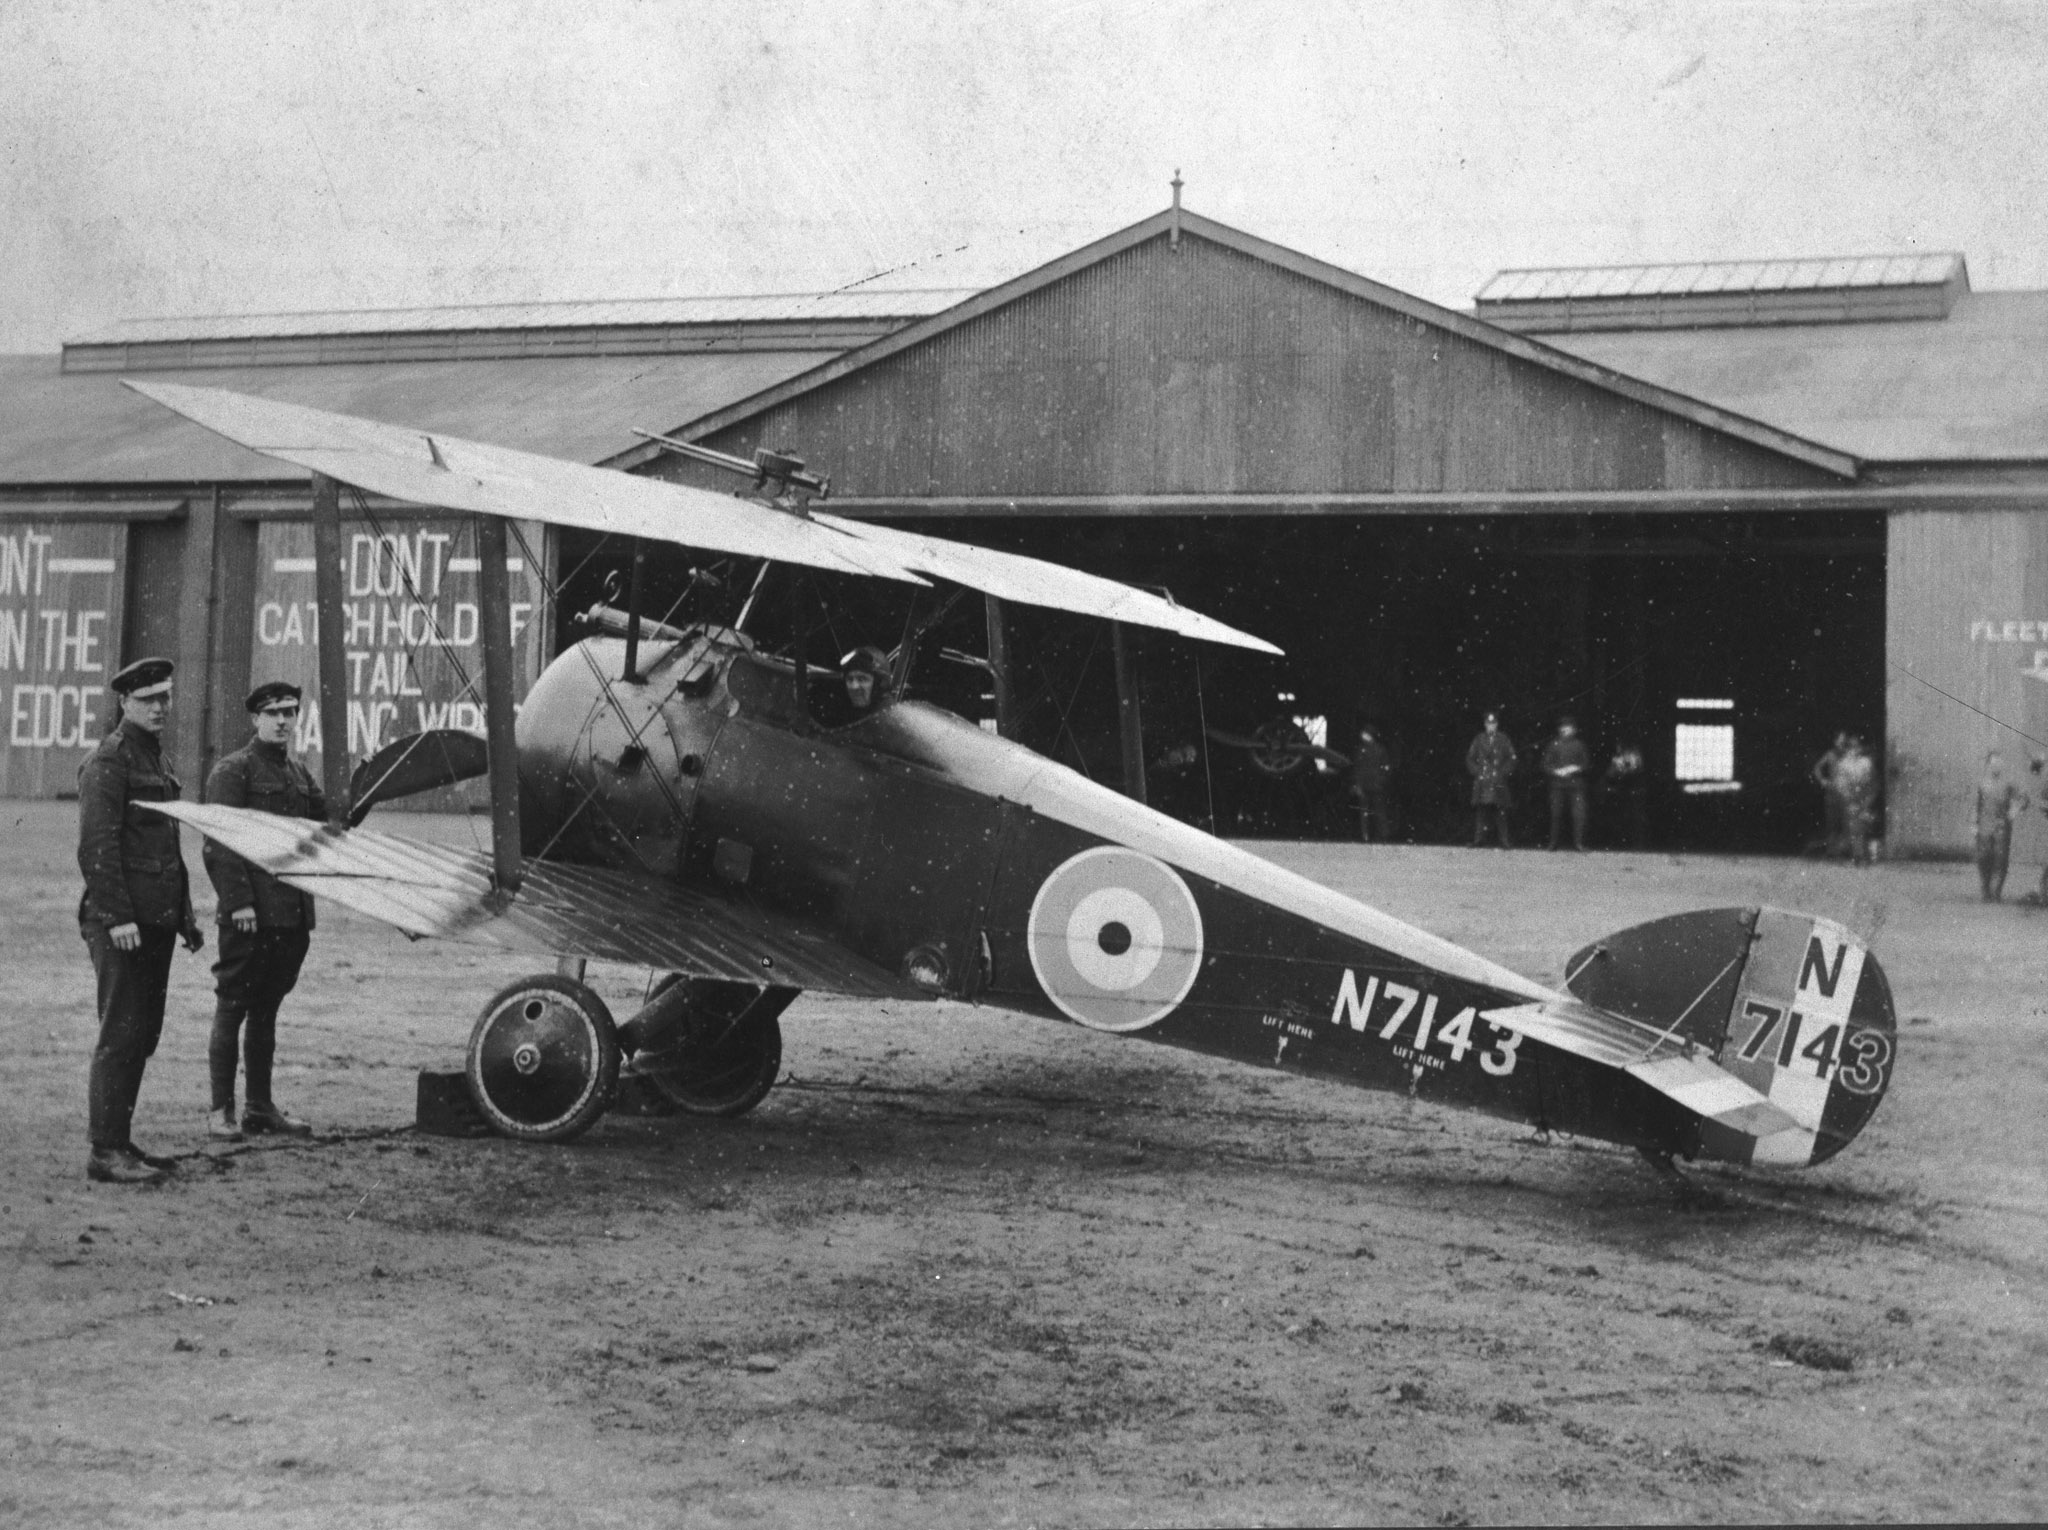 A Sopwith Camel at Turnhouse, Scotland, in 1918. This machine was flown by Lieutenant William S. Lockhart. PHOTO: DND Archives, DND65-90